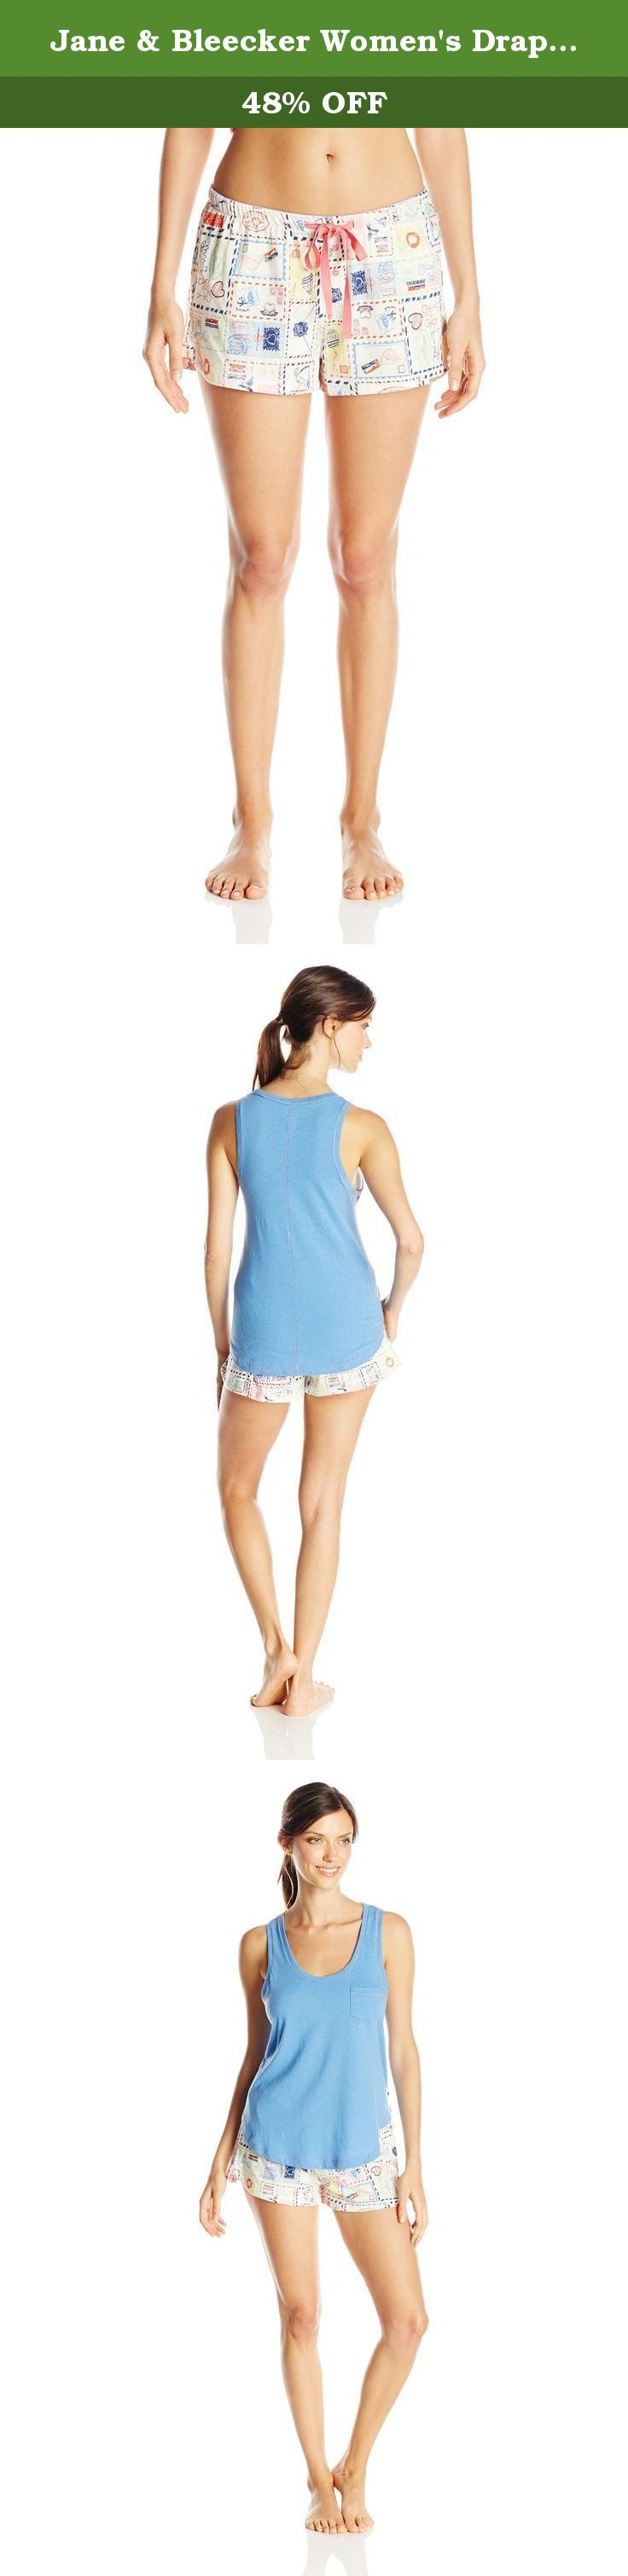 Jane & Bleecker Women's Drapey Jersey Tank and Super Soft Jersey Short Set, Love Letters, Medium. Beyond comfortable and ultra-soft, the Jane and bleecker drapey jersey tank and super soft jersey short set has a relaxed silhouette and was made for laid-back everyday style.